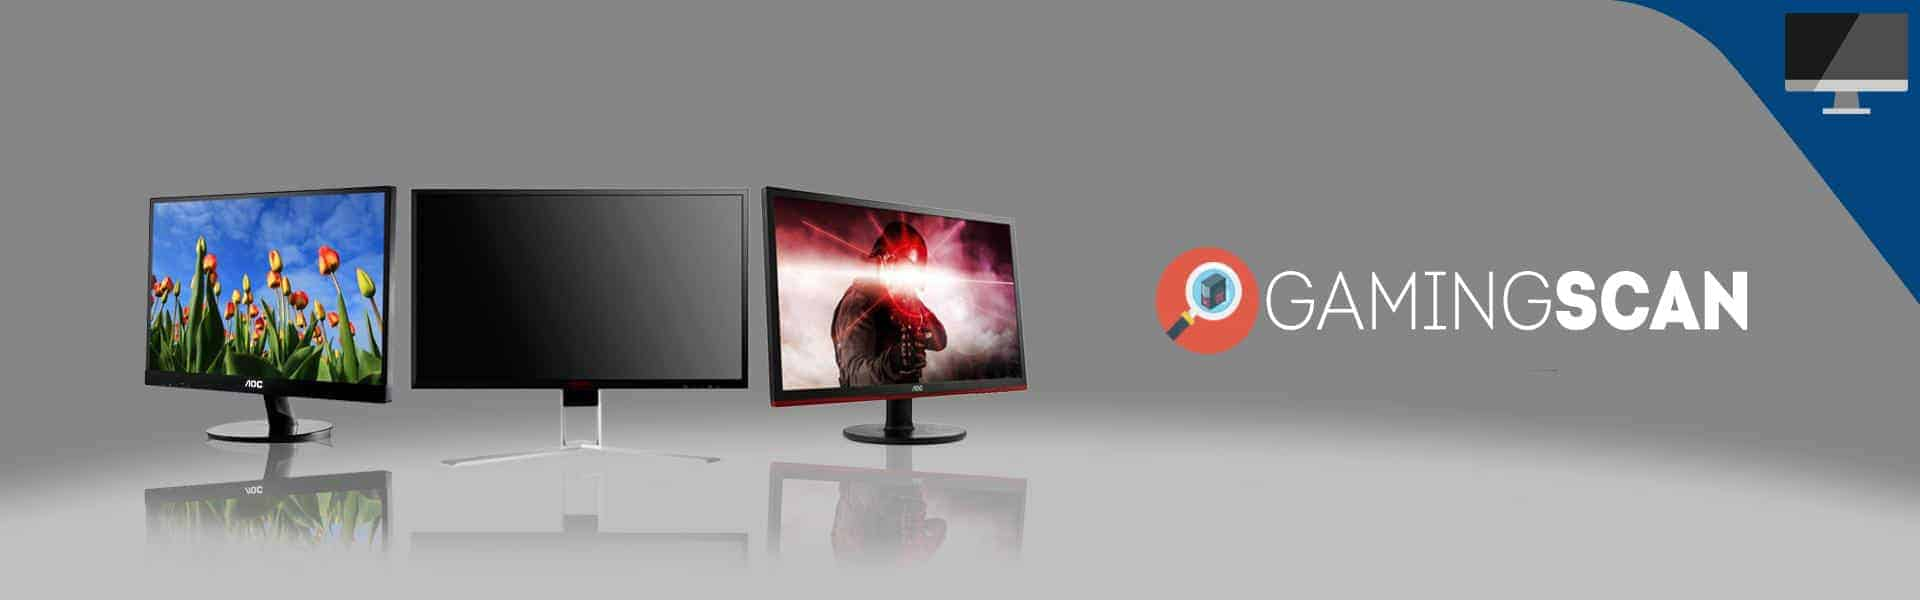 What Is The Best Monitor Size For Gaming?